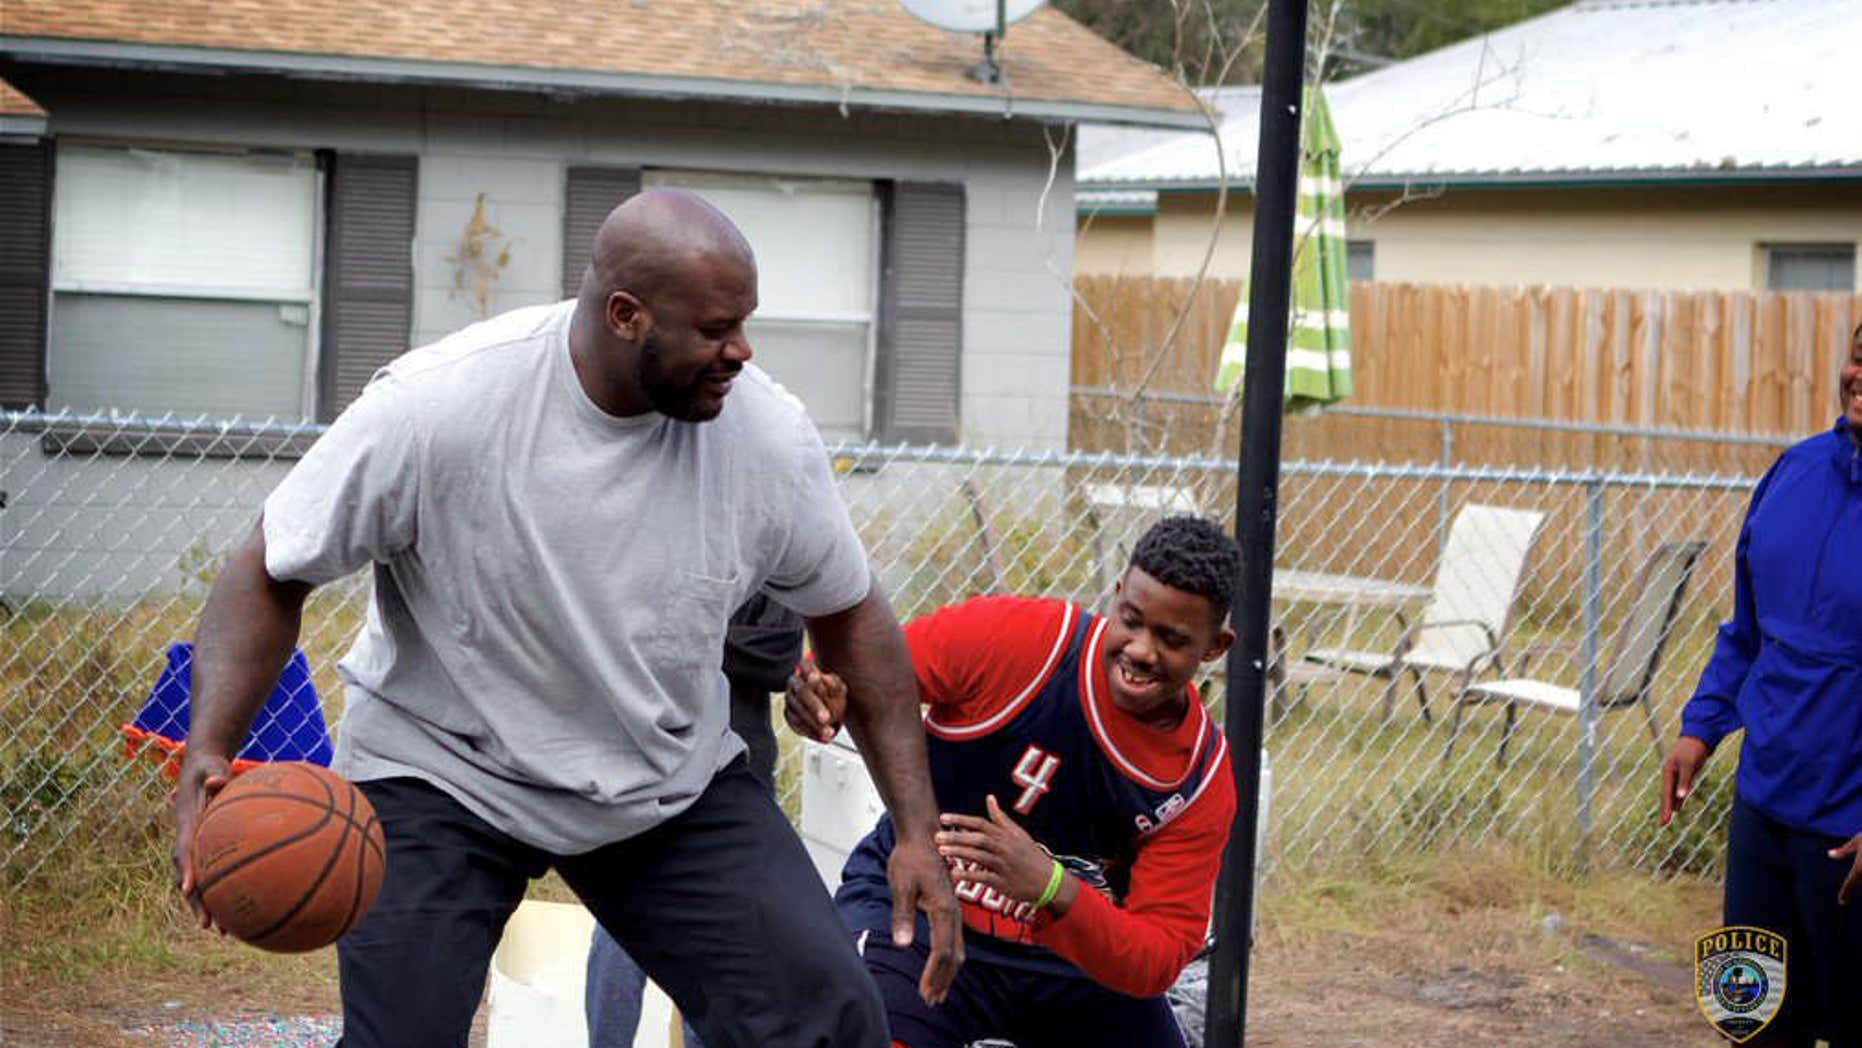 Shaquille O'Neal surprises Florida teens and officer with game of pickup basketball.